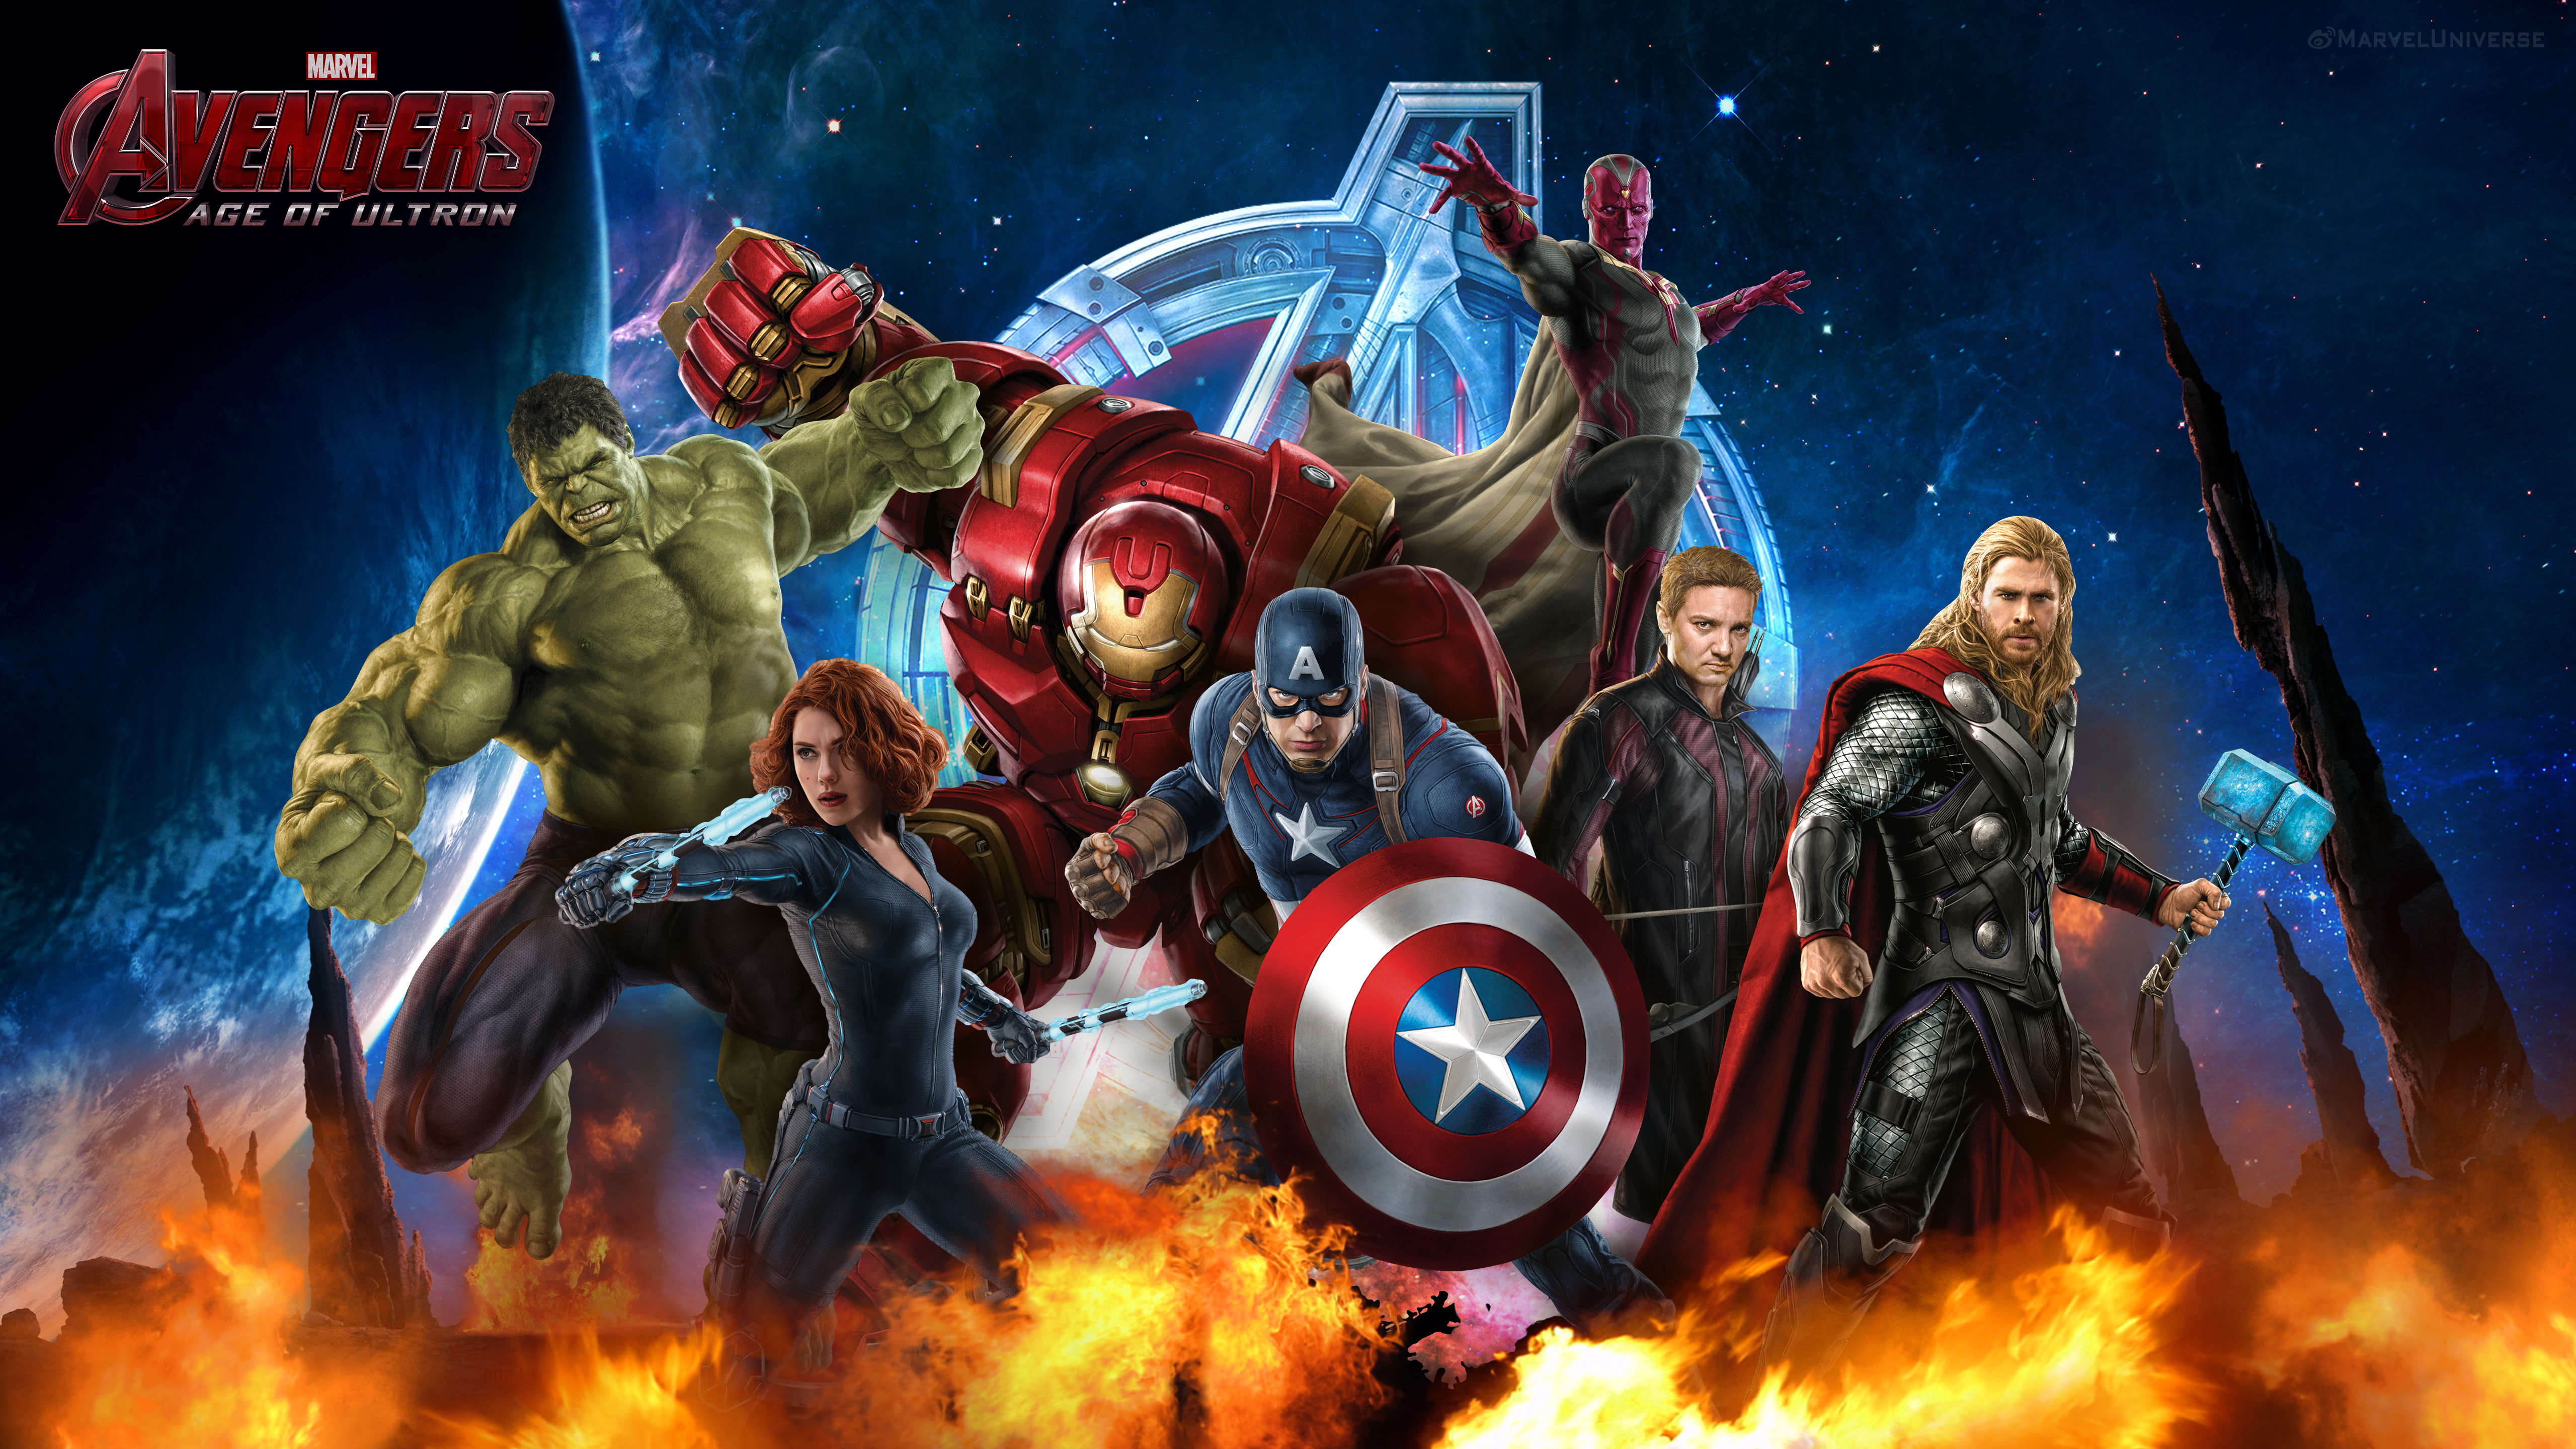 Avengers Age Of Ultron By Iloegbunam On Deviantart: Avengers: Age Of Ultron Promo Art By Chenshijie9095 On